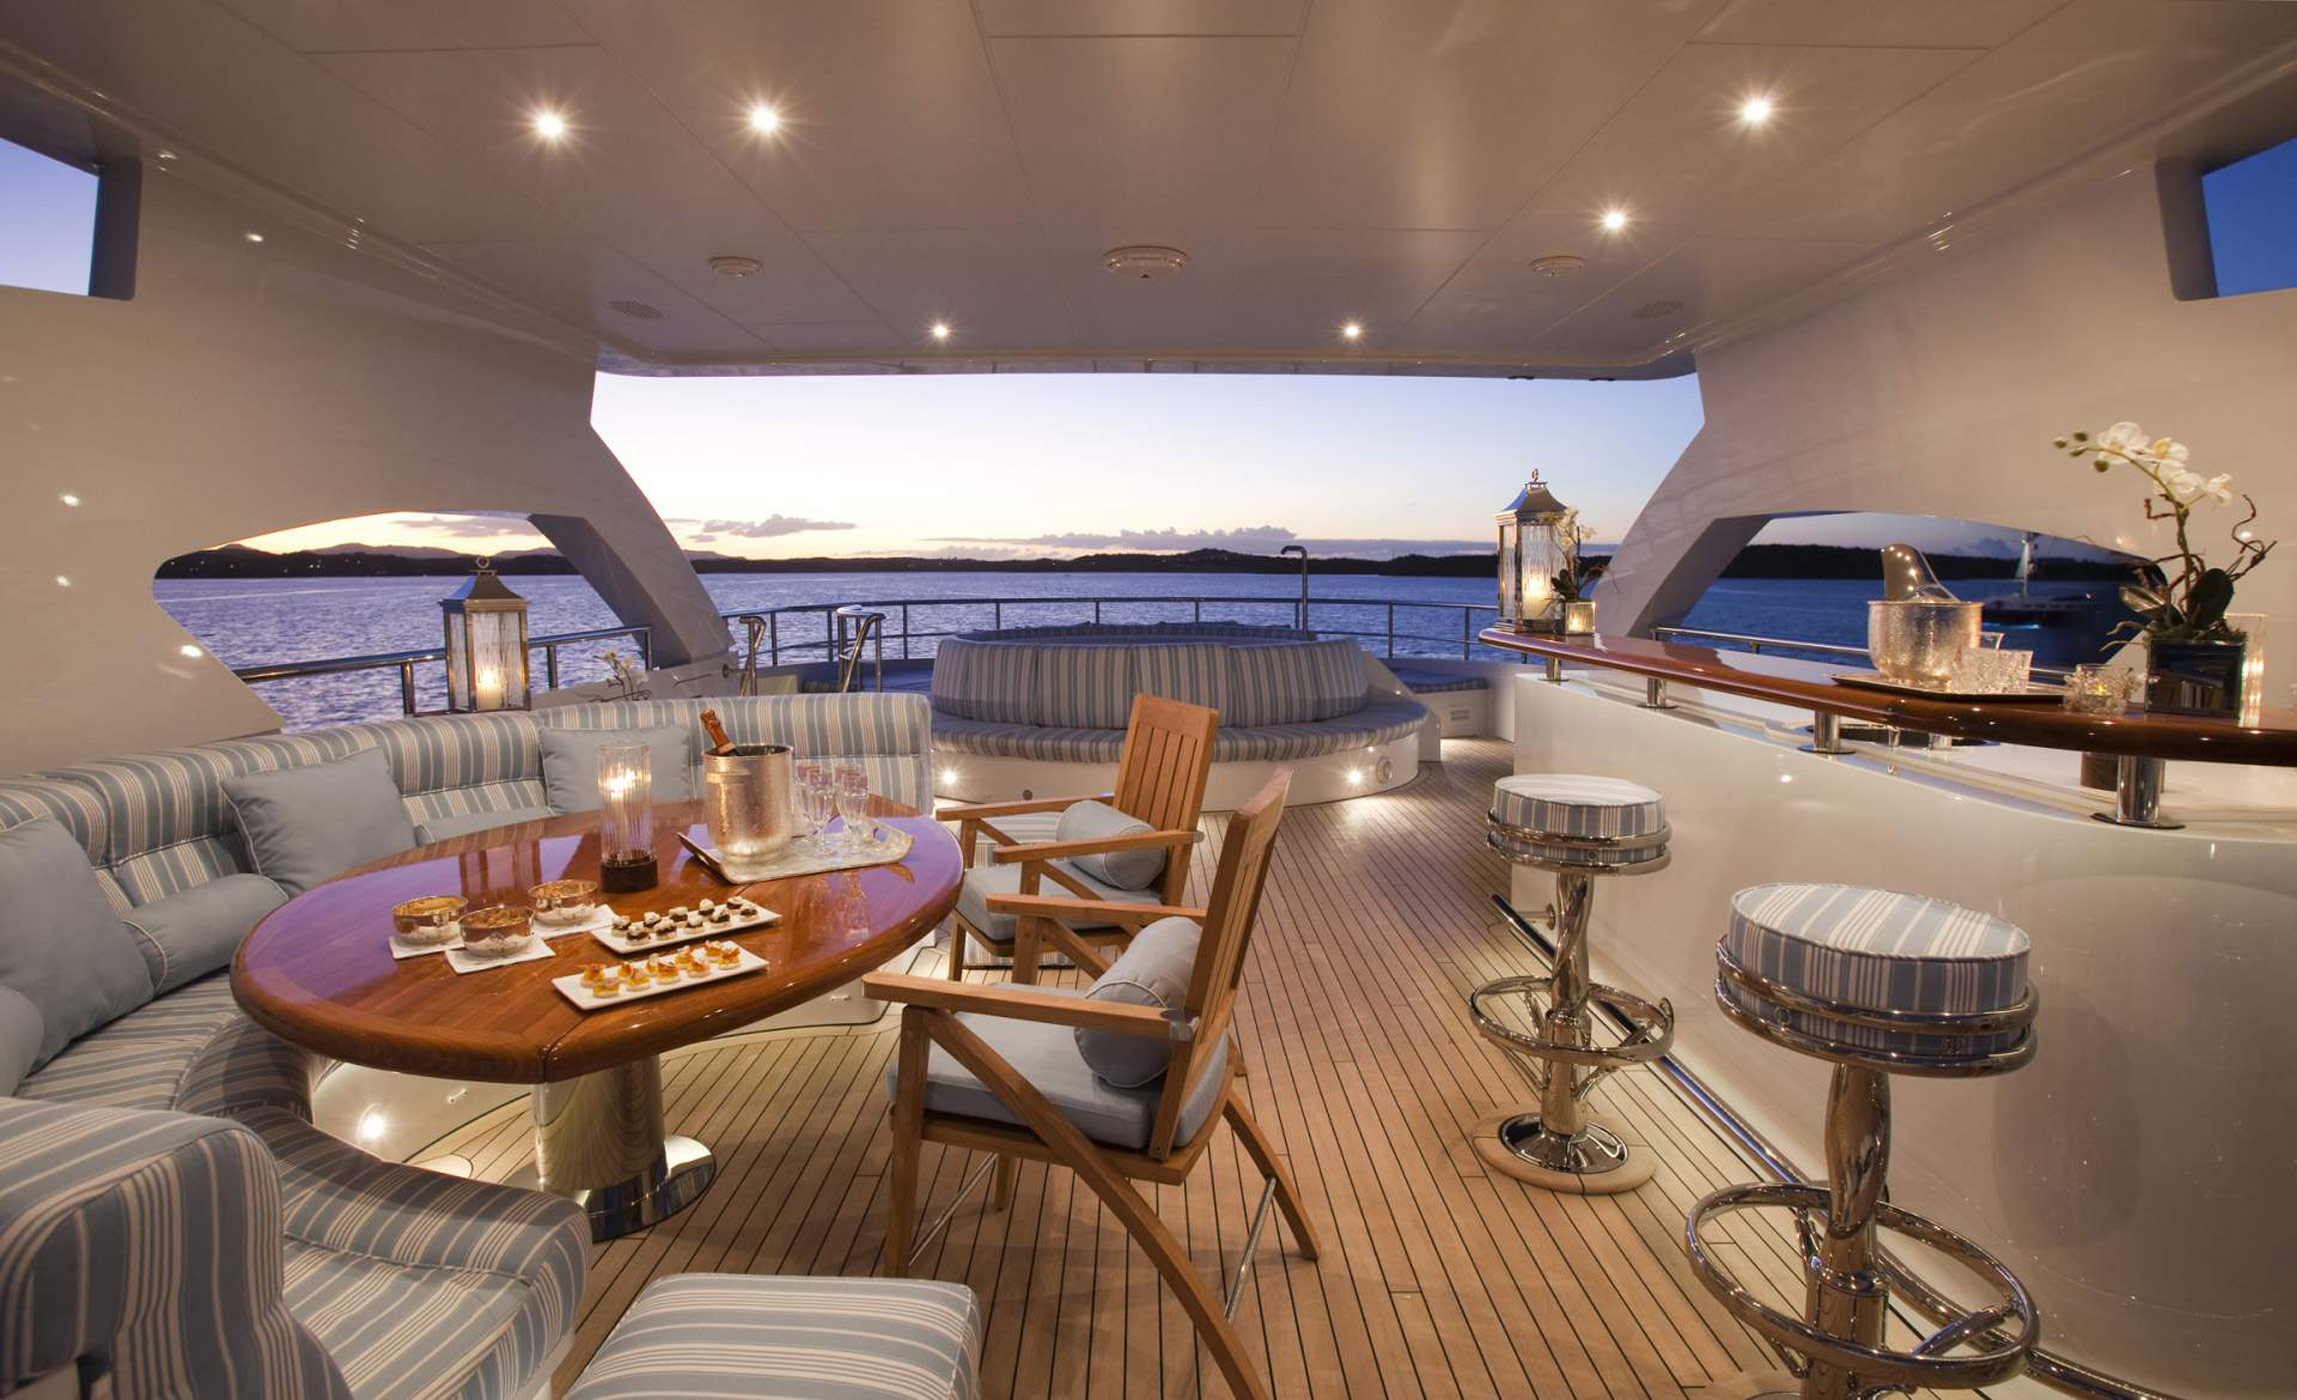 Blind date private motor yacht a lighting project by light and